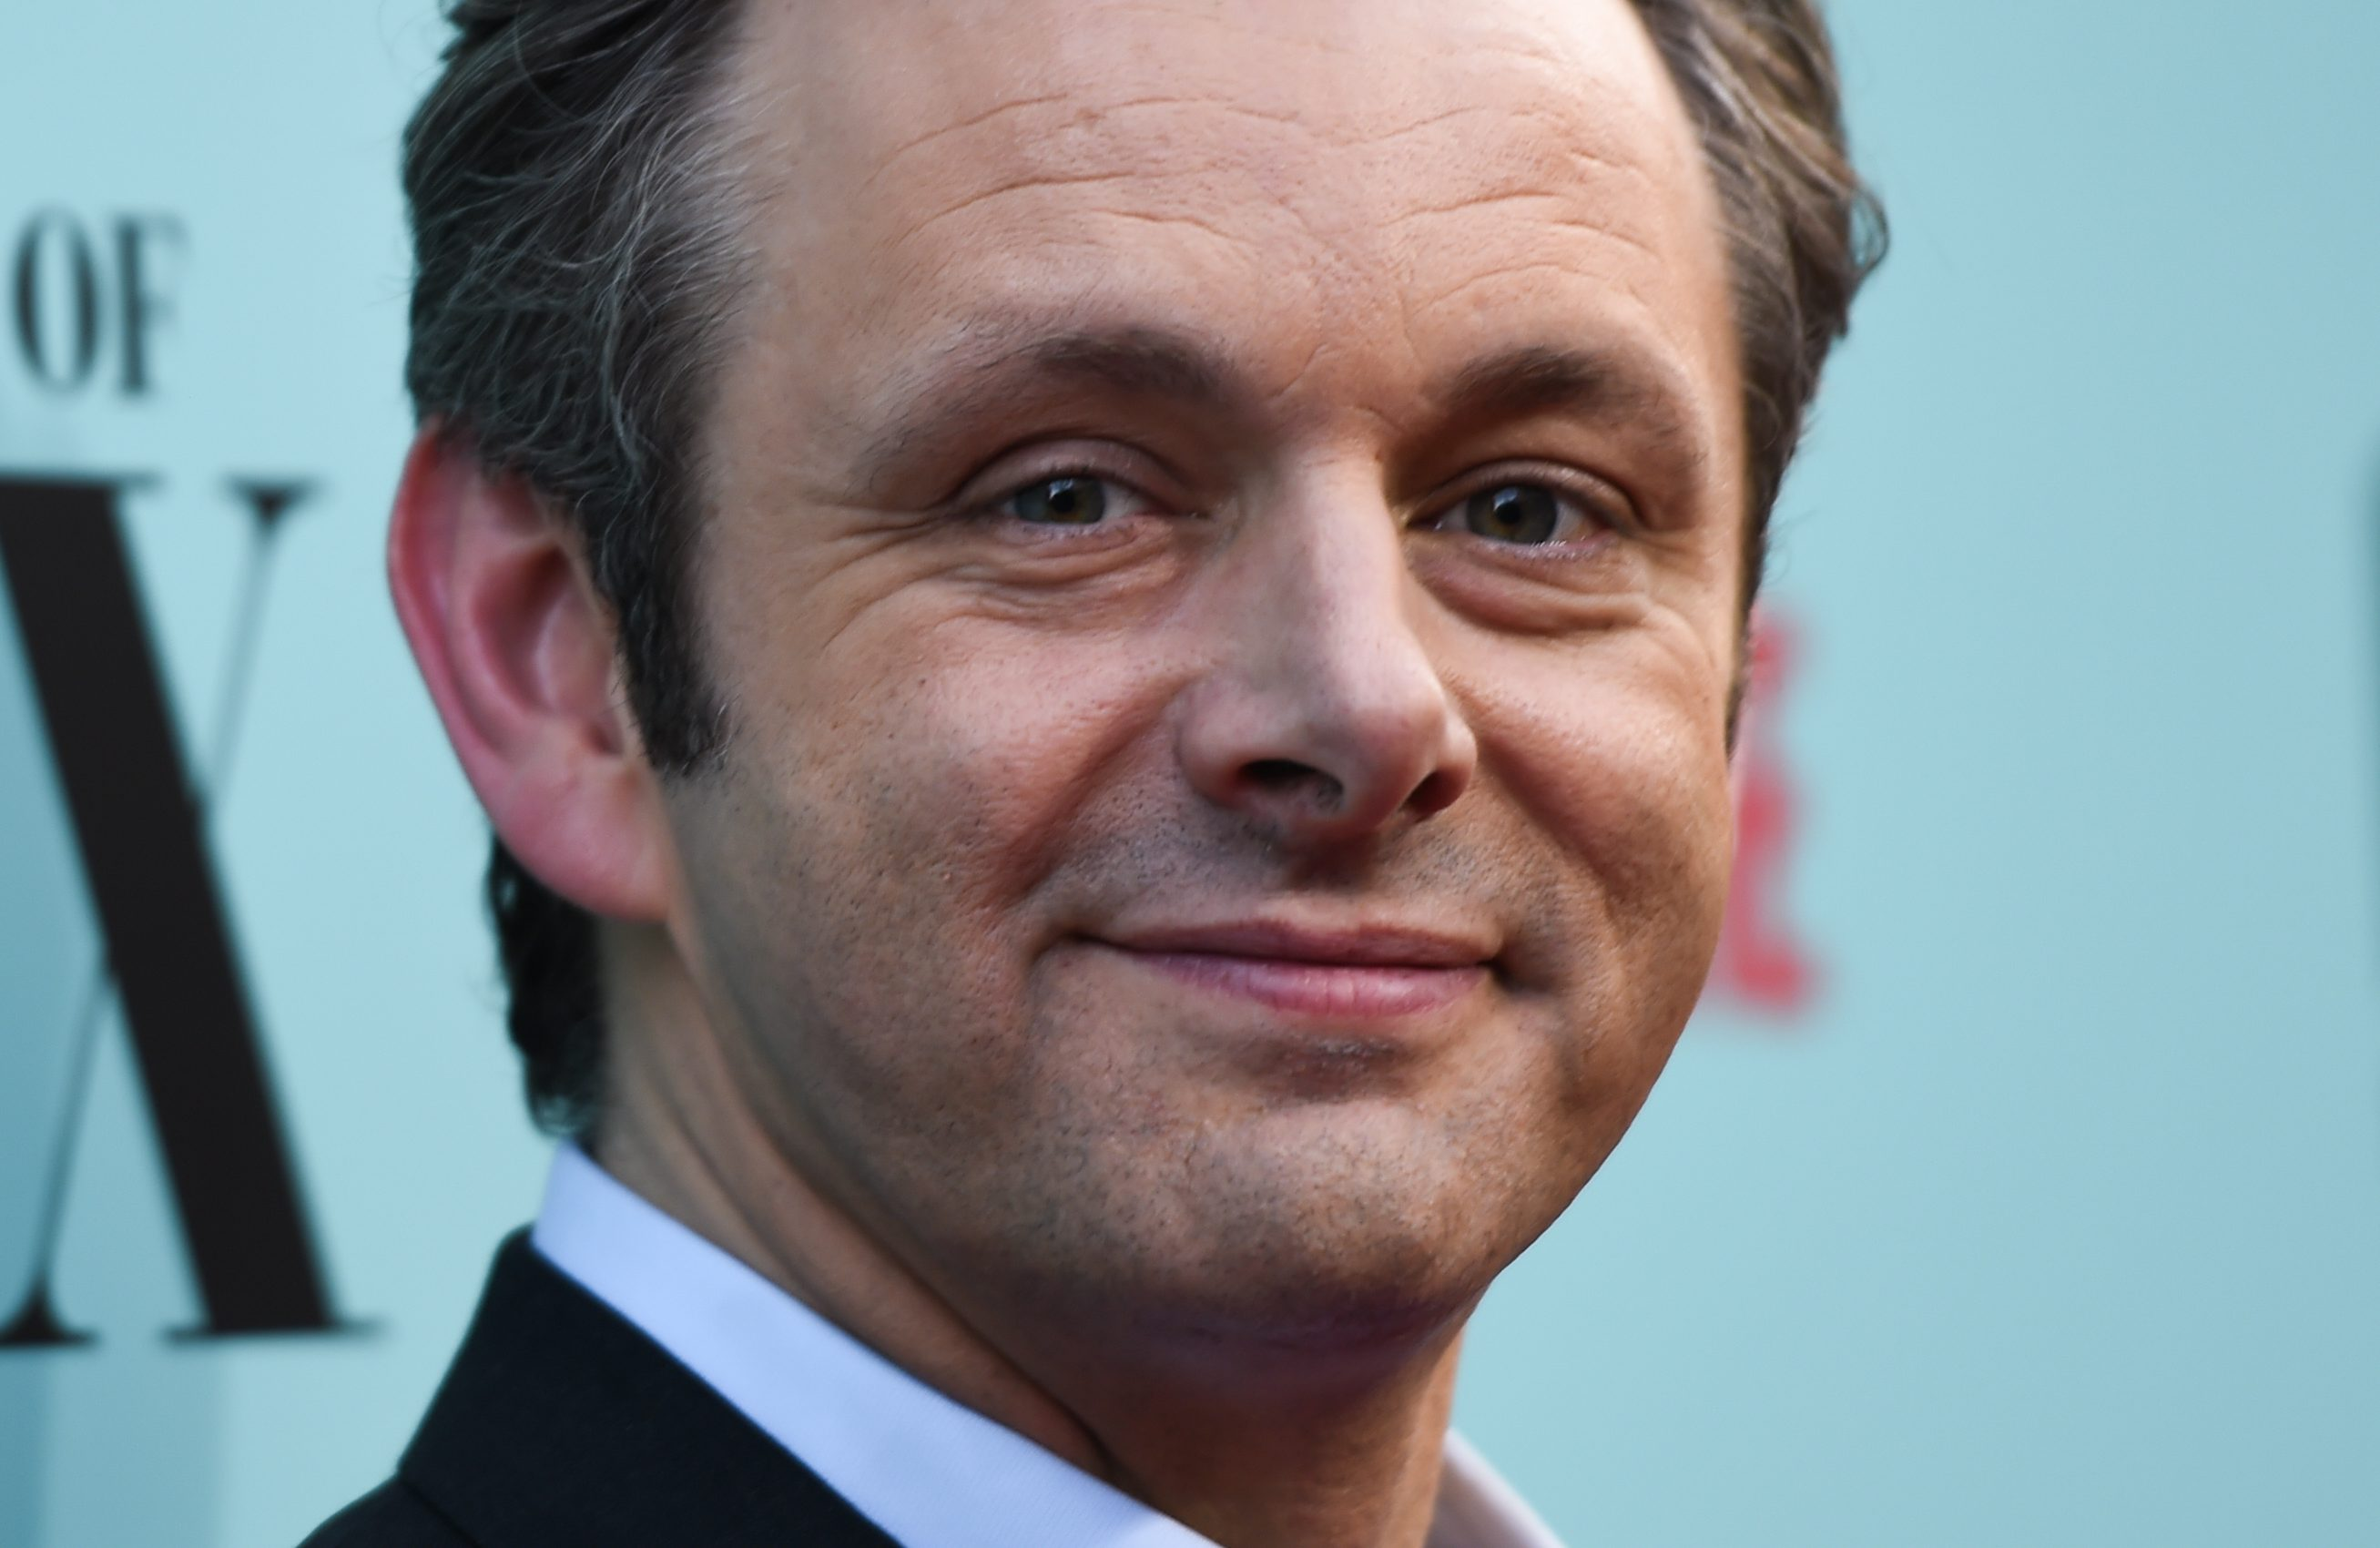 Michael Sheen is leaving acting to take on 'fascistic' Western politics